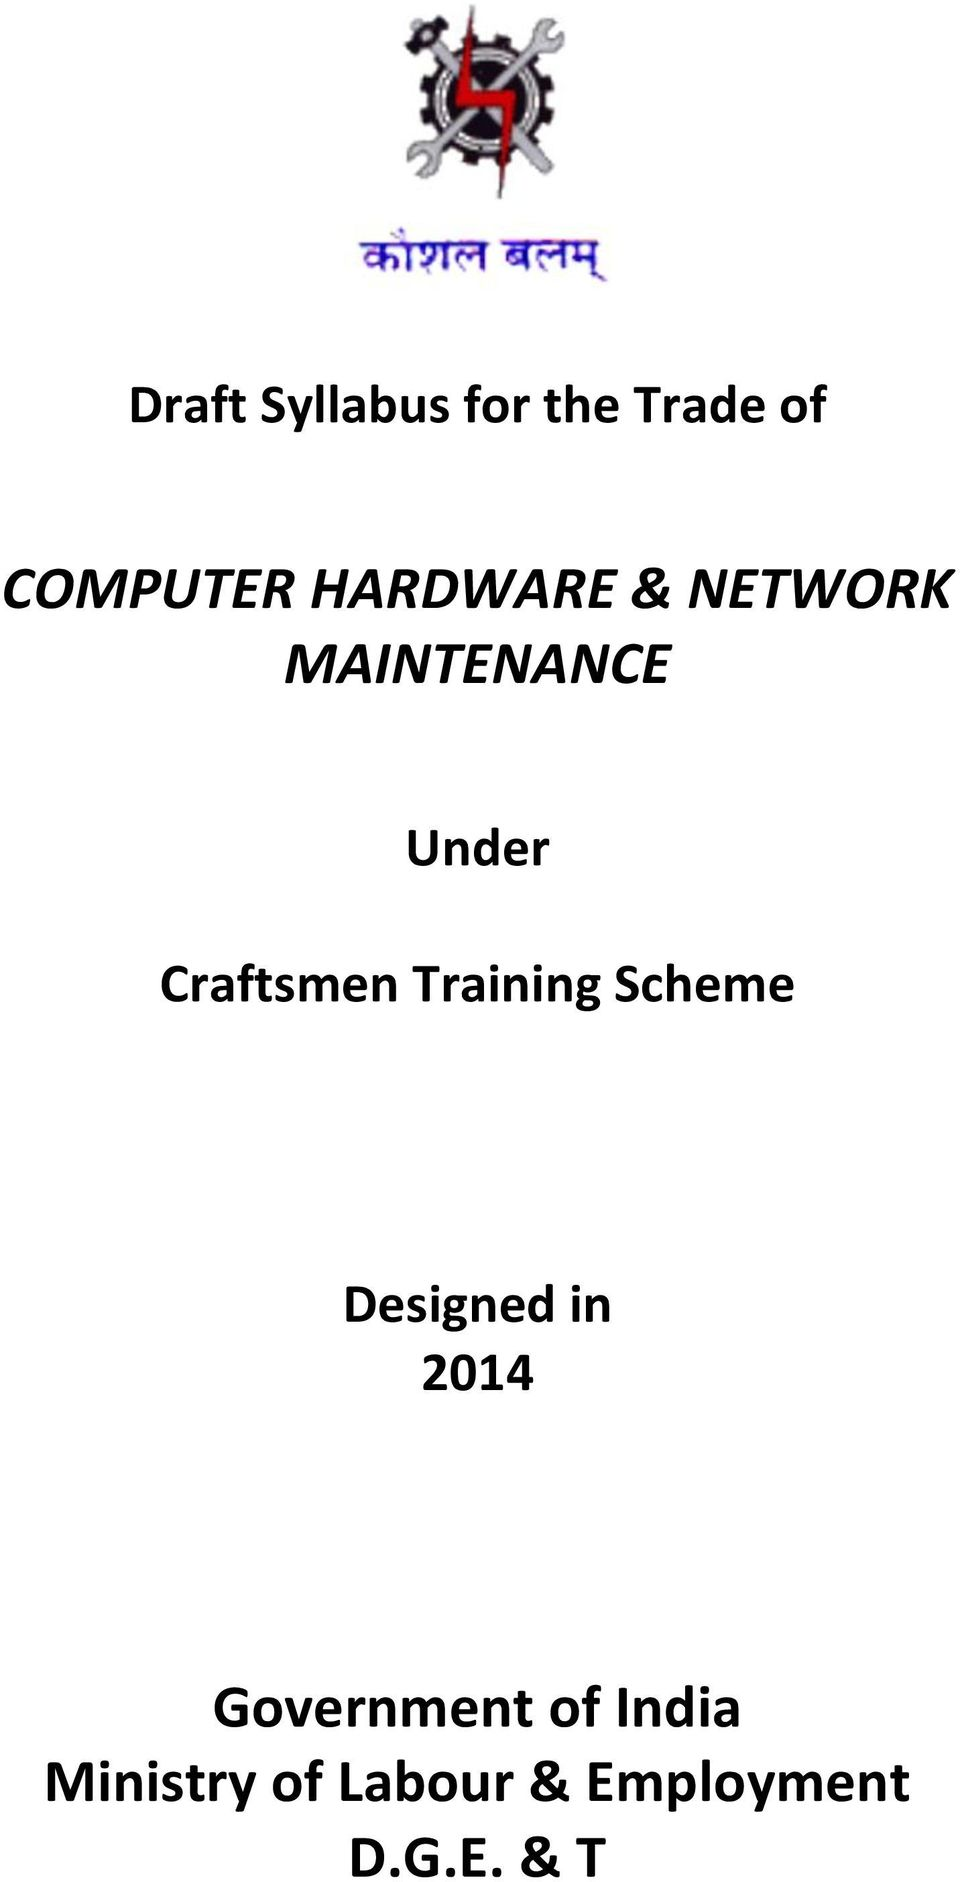 Craftsmen Training Scheme Designed in 2014